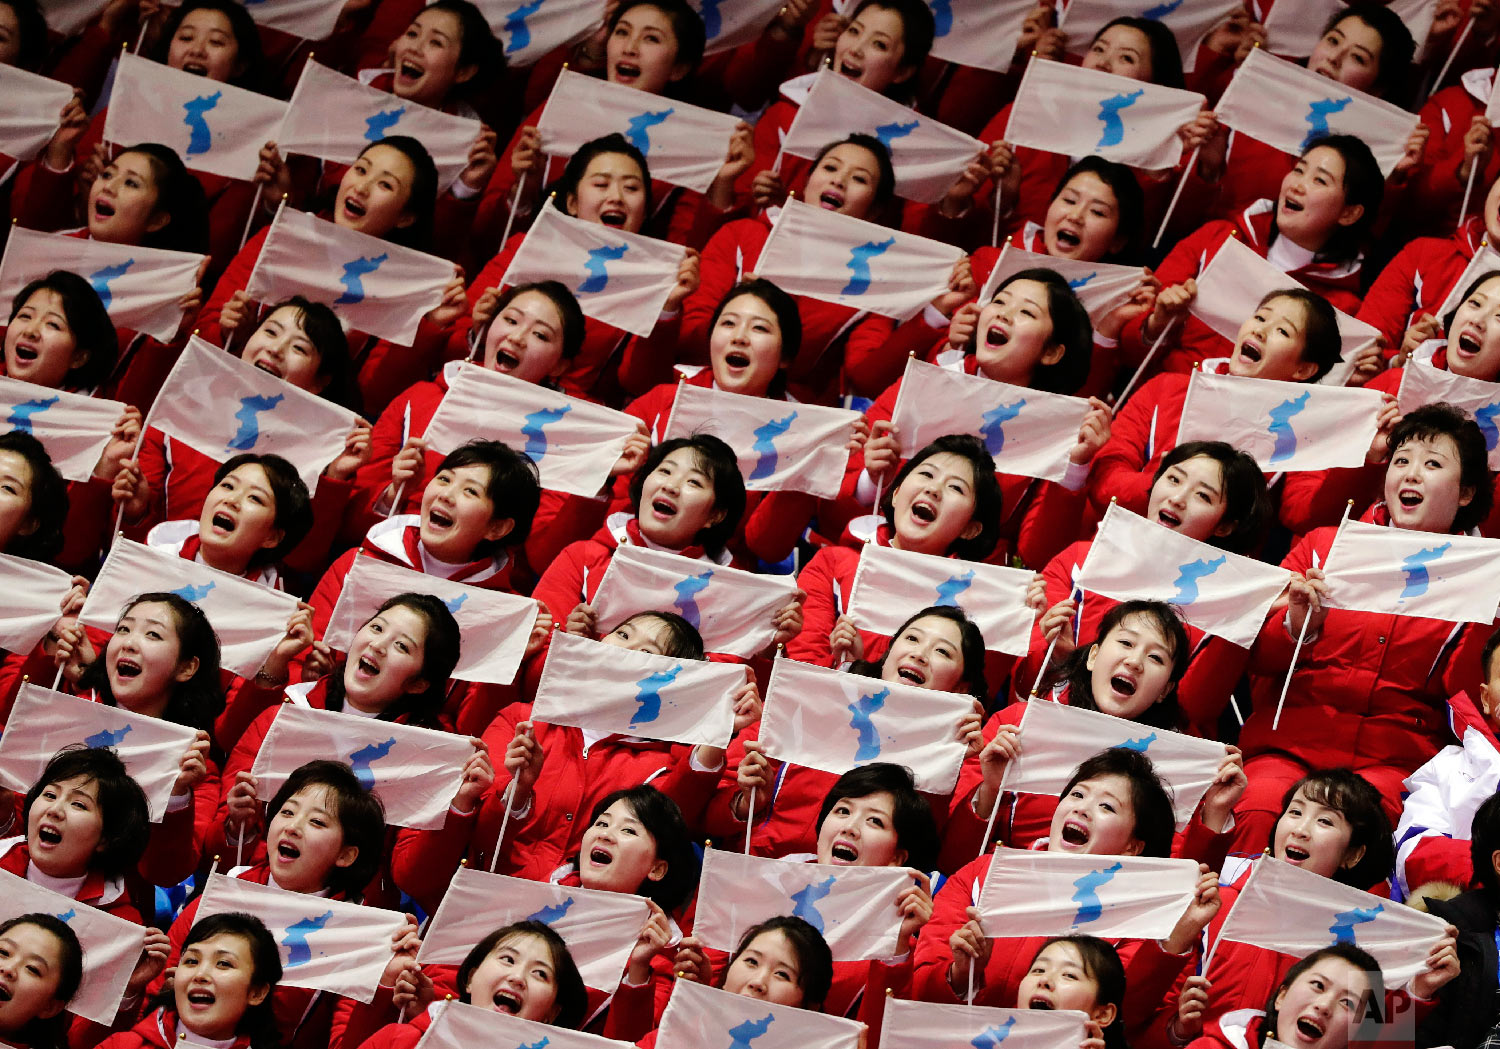 North Korean supporters hold up Korean unification flags during the ladies' 500 meters short-track speedskating at the 2018 Winter Olympics in Gangneung, South Korea, on Feb. 10, 2018. (AP Photo/Julie Jacobson)